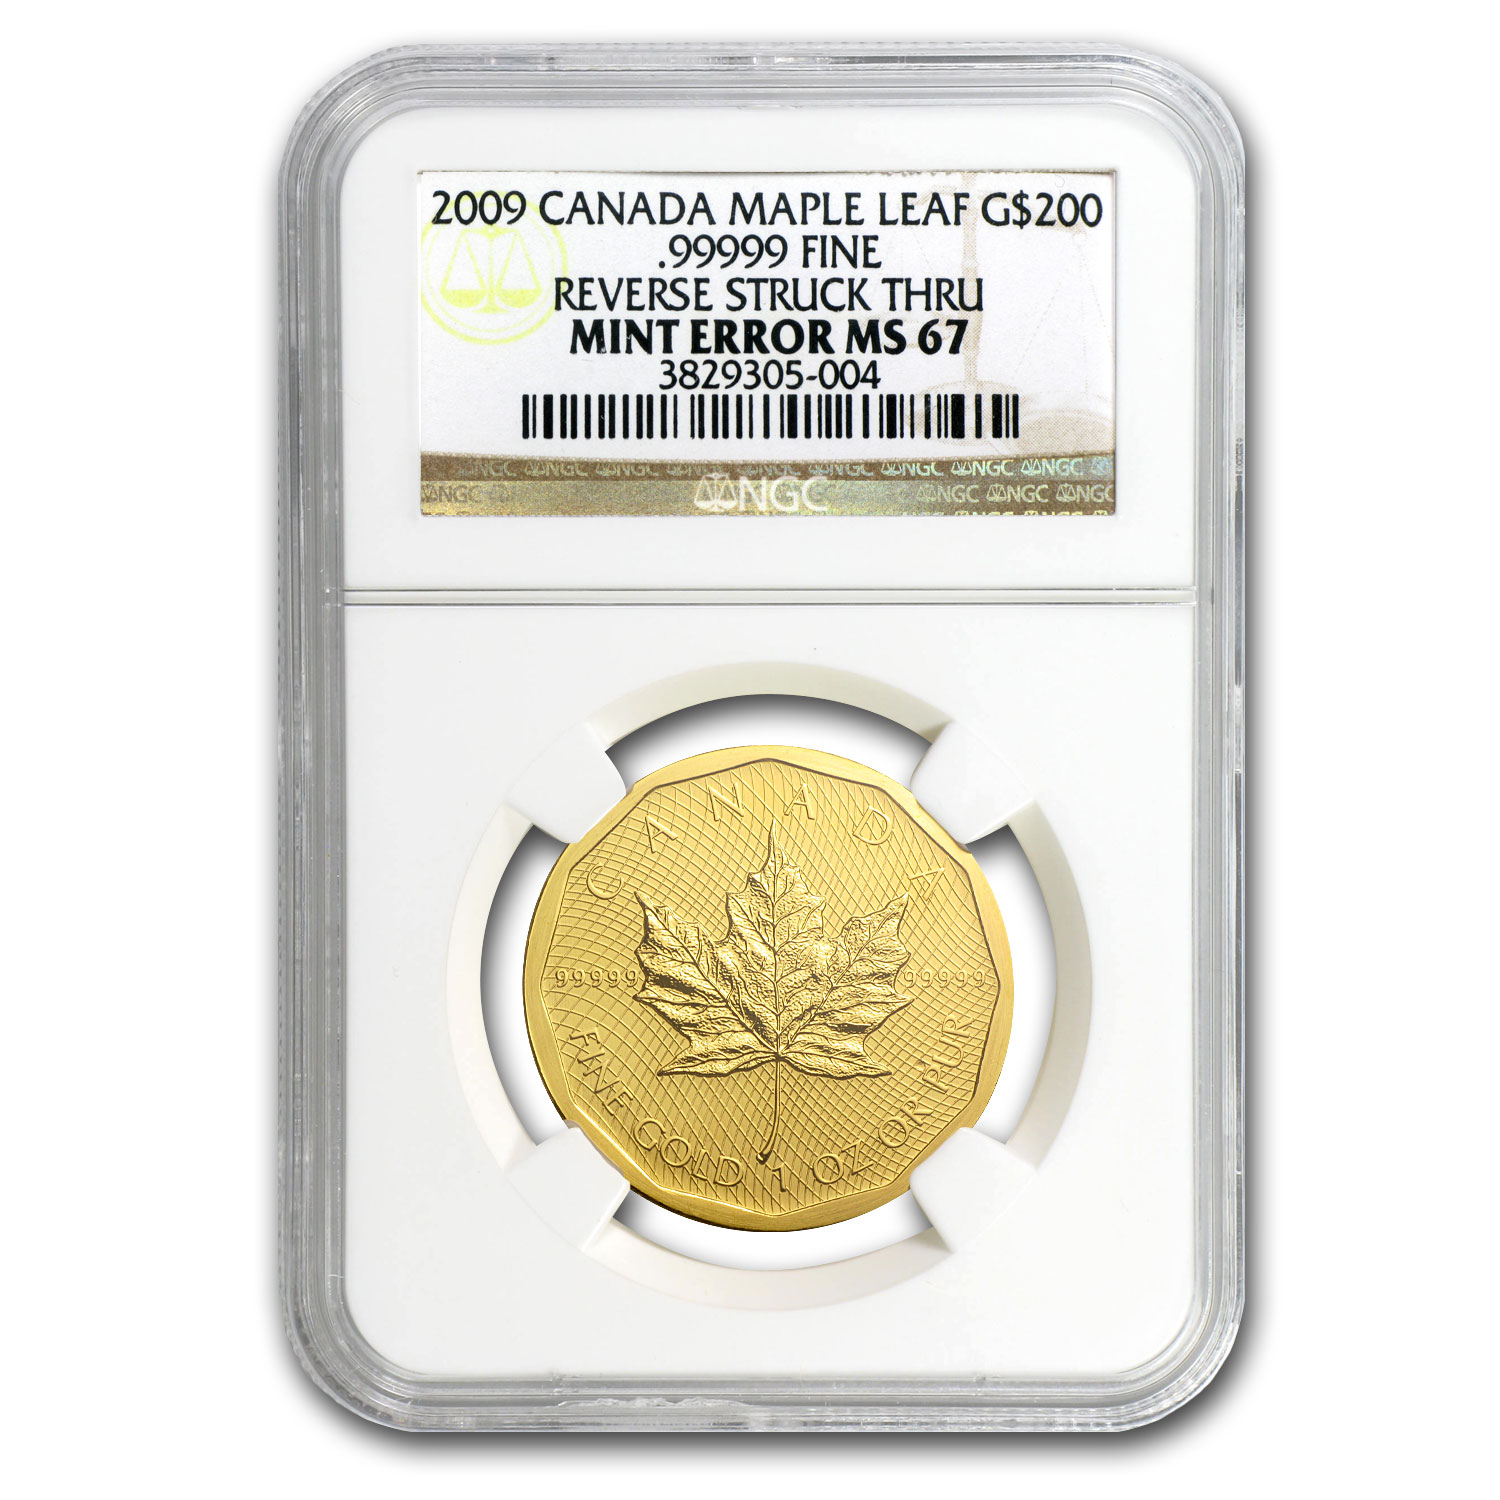 2009 1 oz Gold Canadian Maple Leaf MS-67 NGC (.99999, Mint Error)